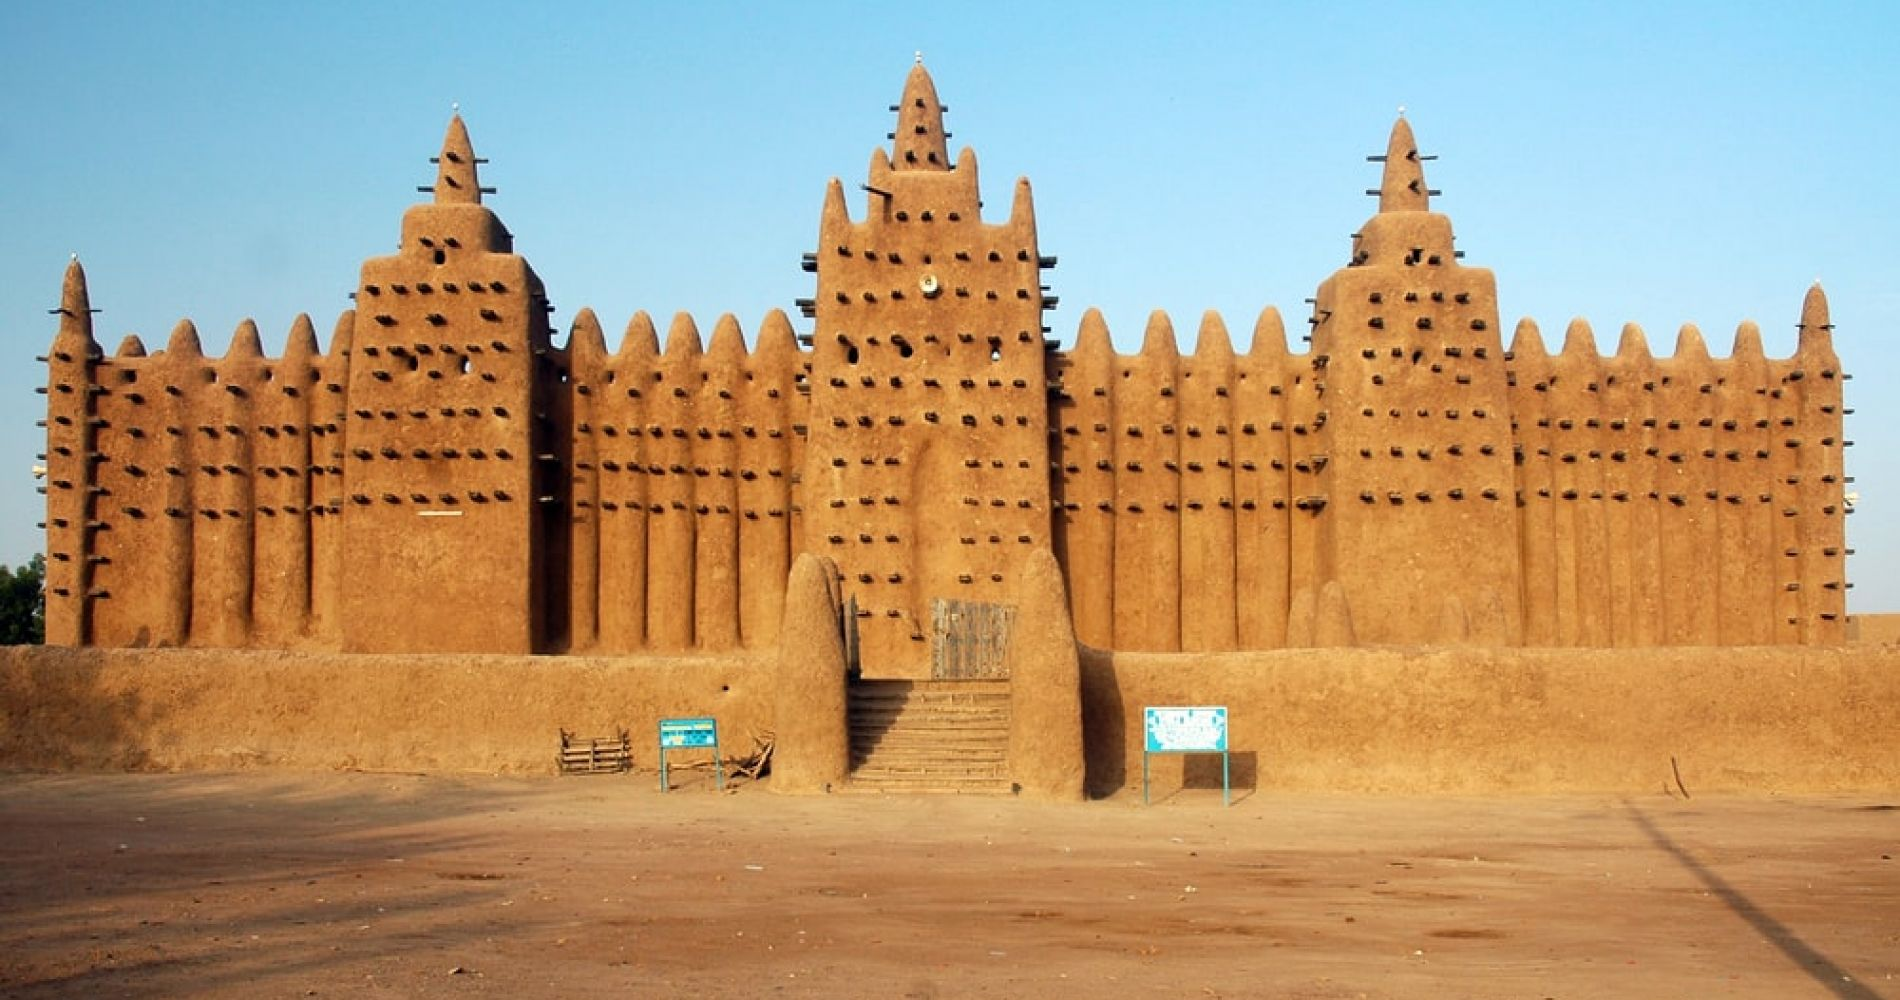 Visit the Ancient City of Djenne